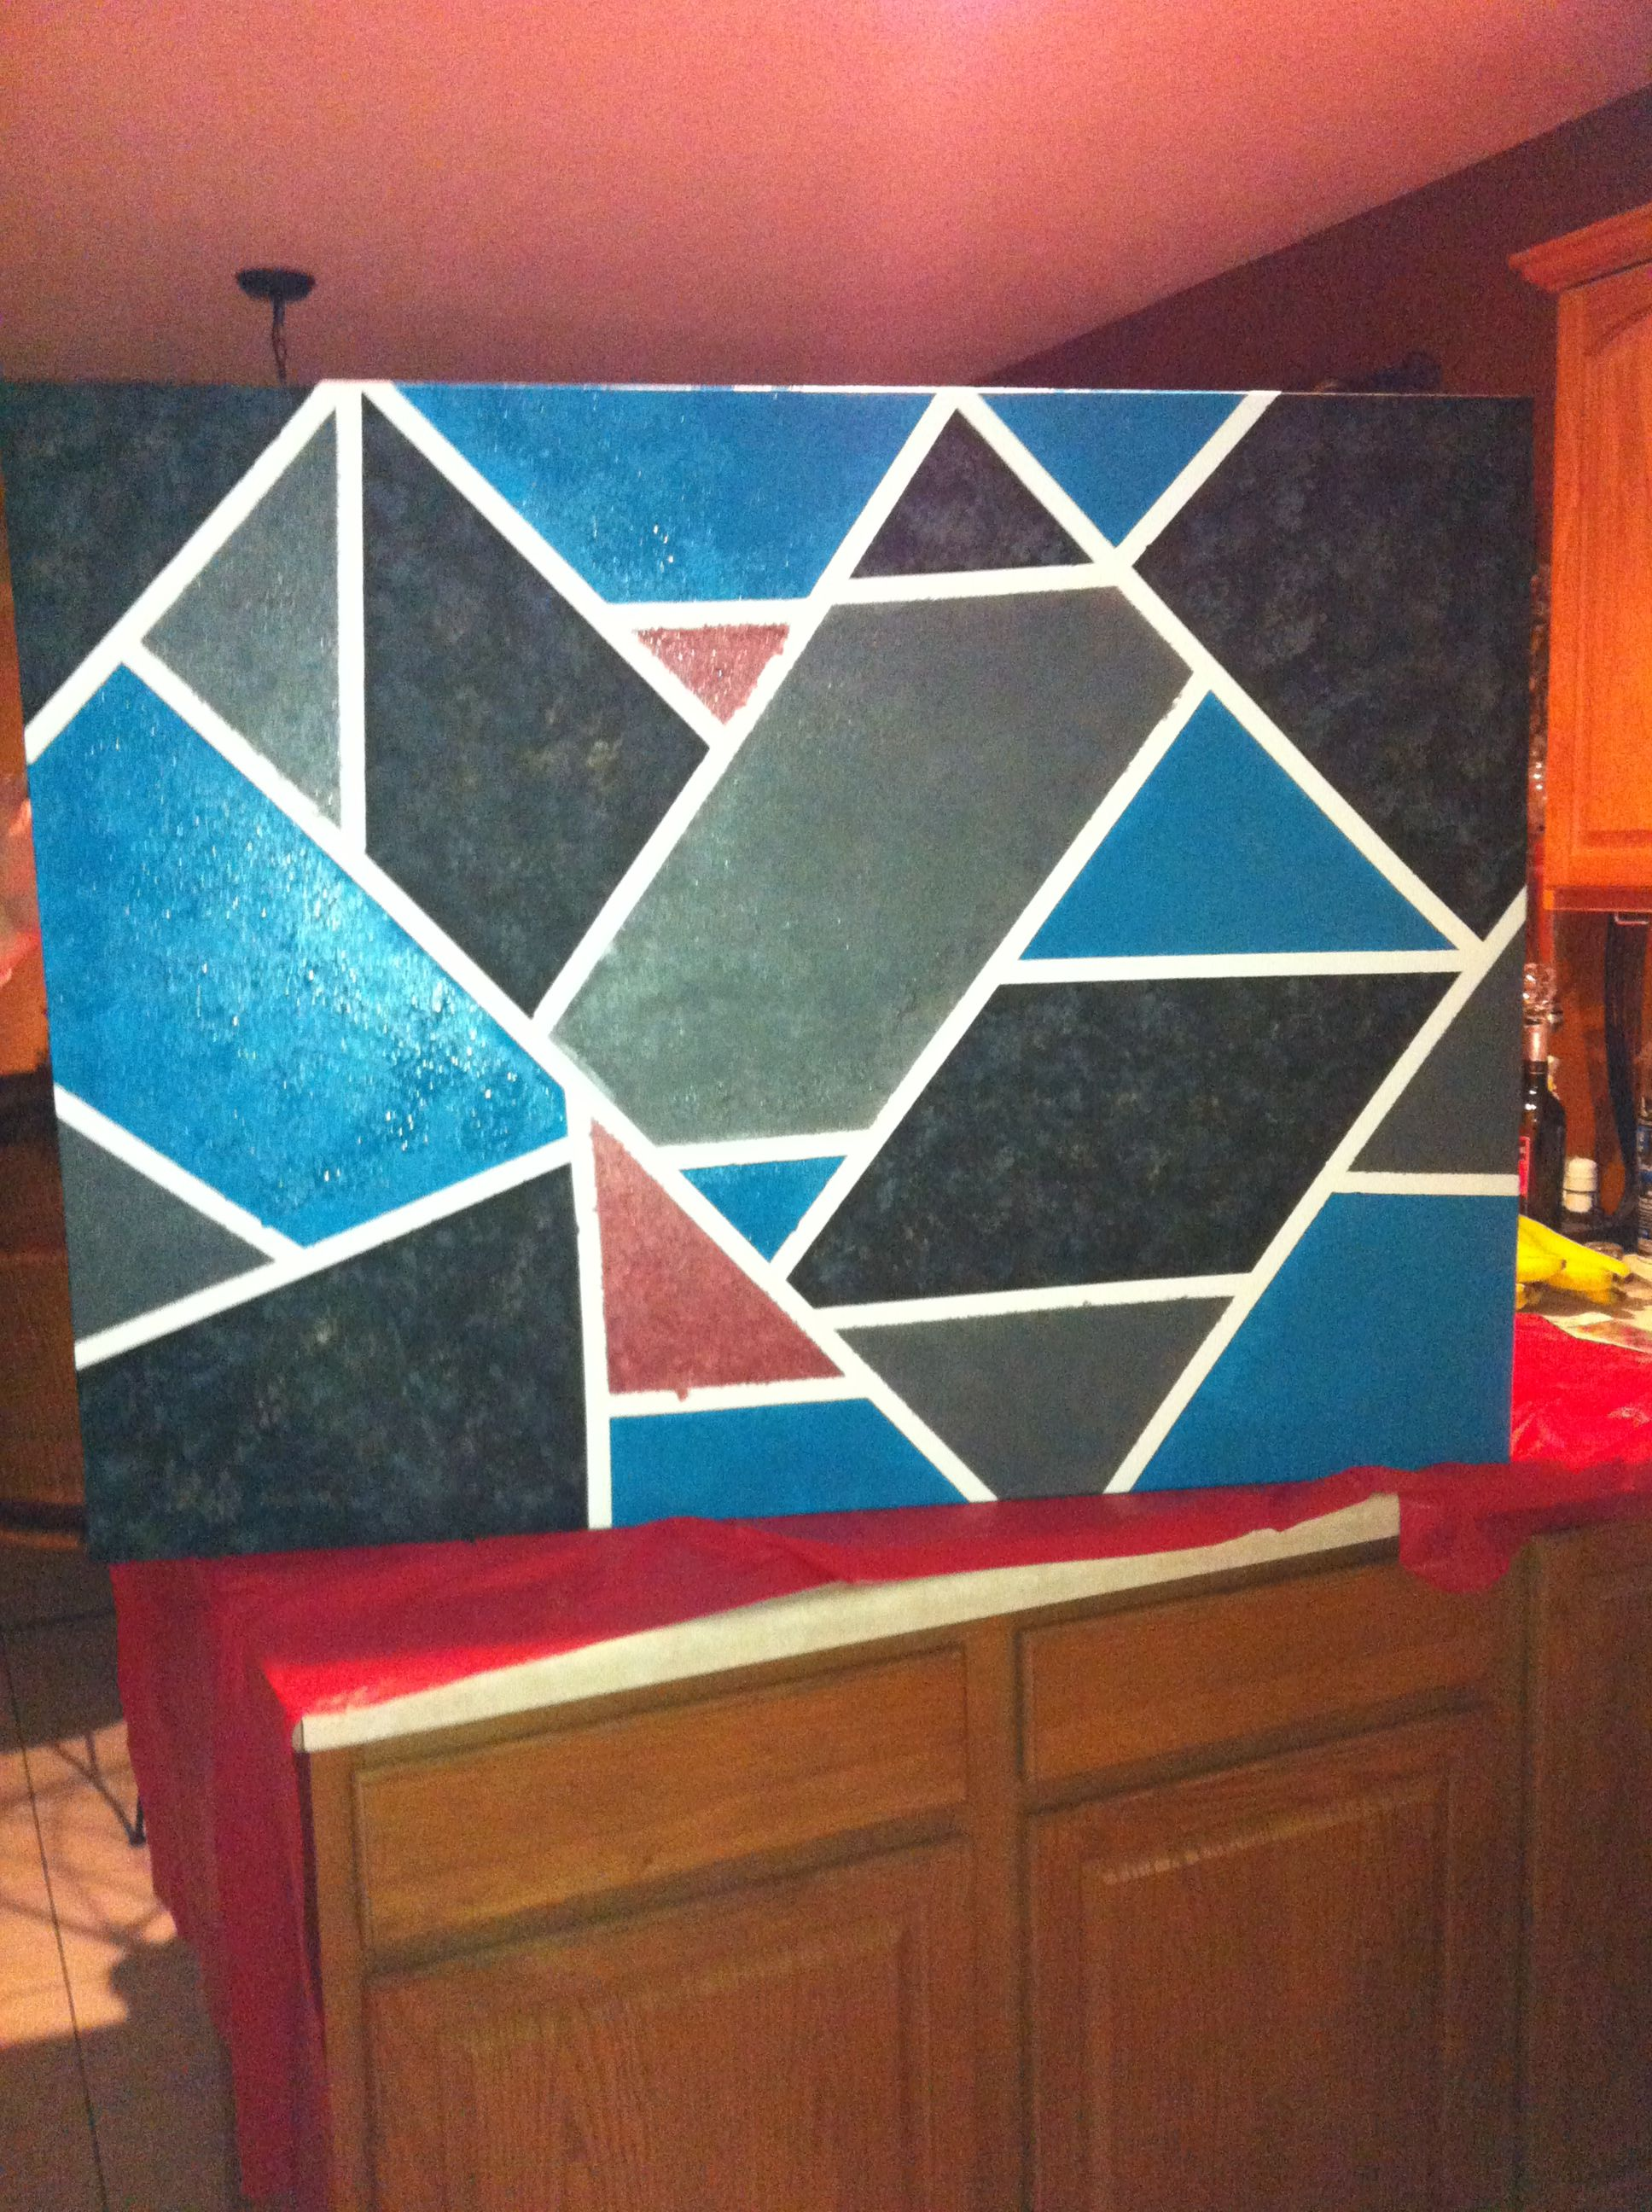 Place Tape Across Canvas Paint Inside Squares Used A Sponge To Faux Paint In Darker Colors For Dimension Pull Tape Off And You Have Your Art